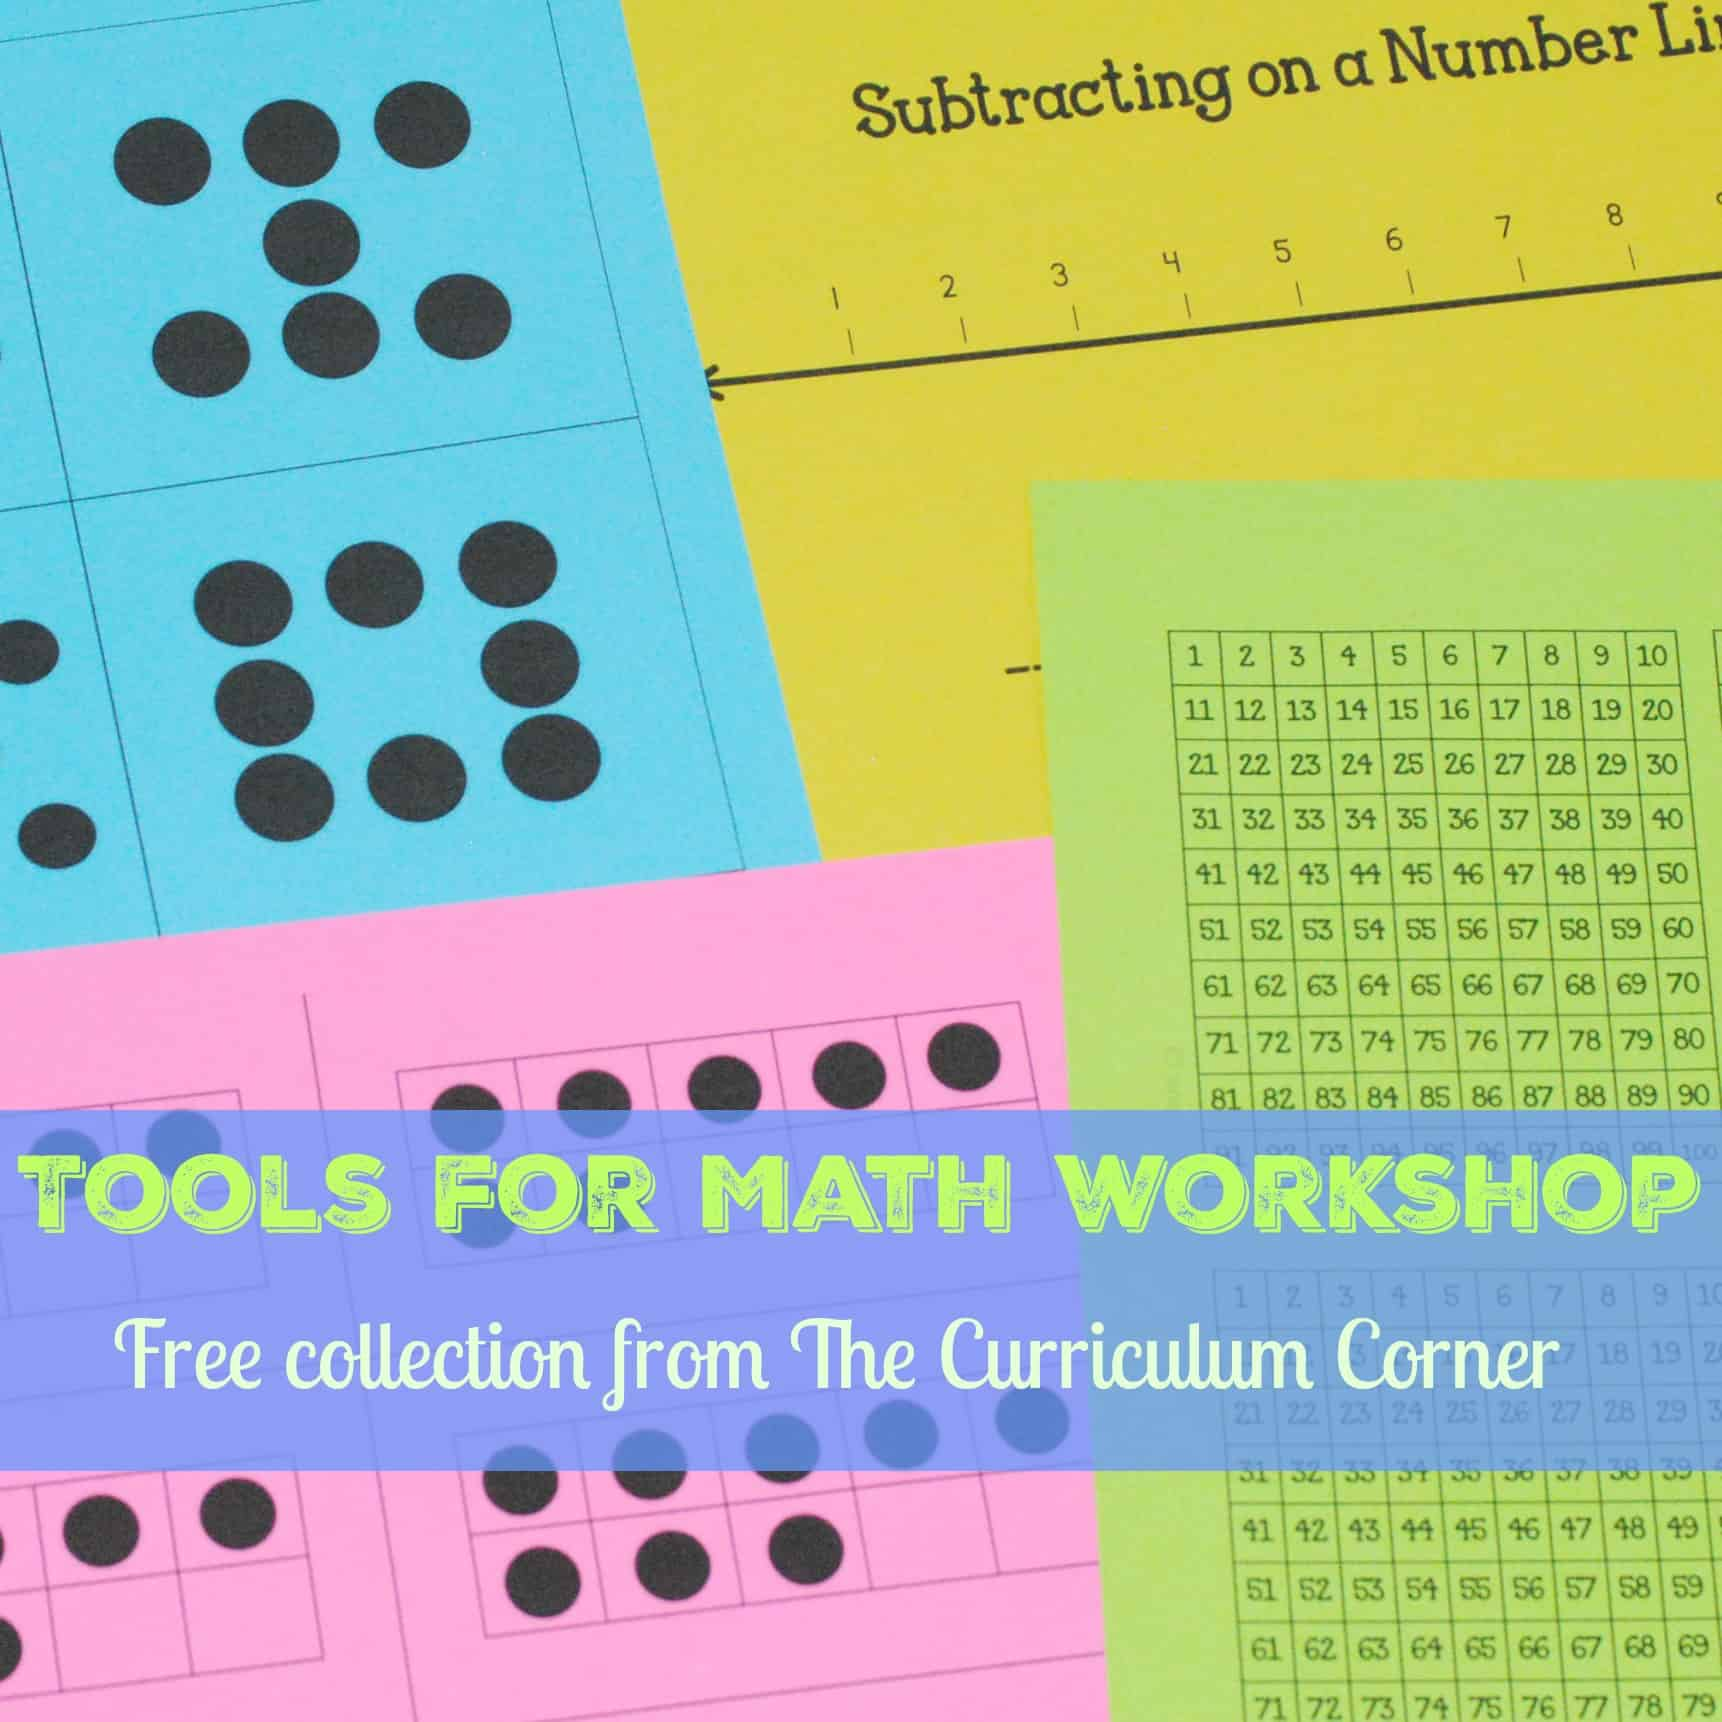 Tools for Math Workshop